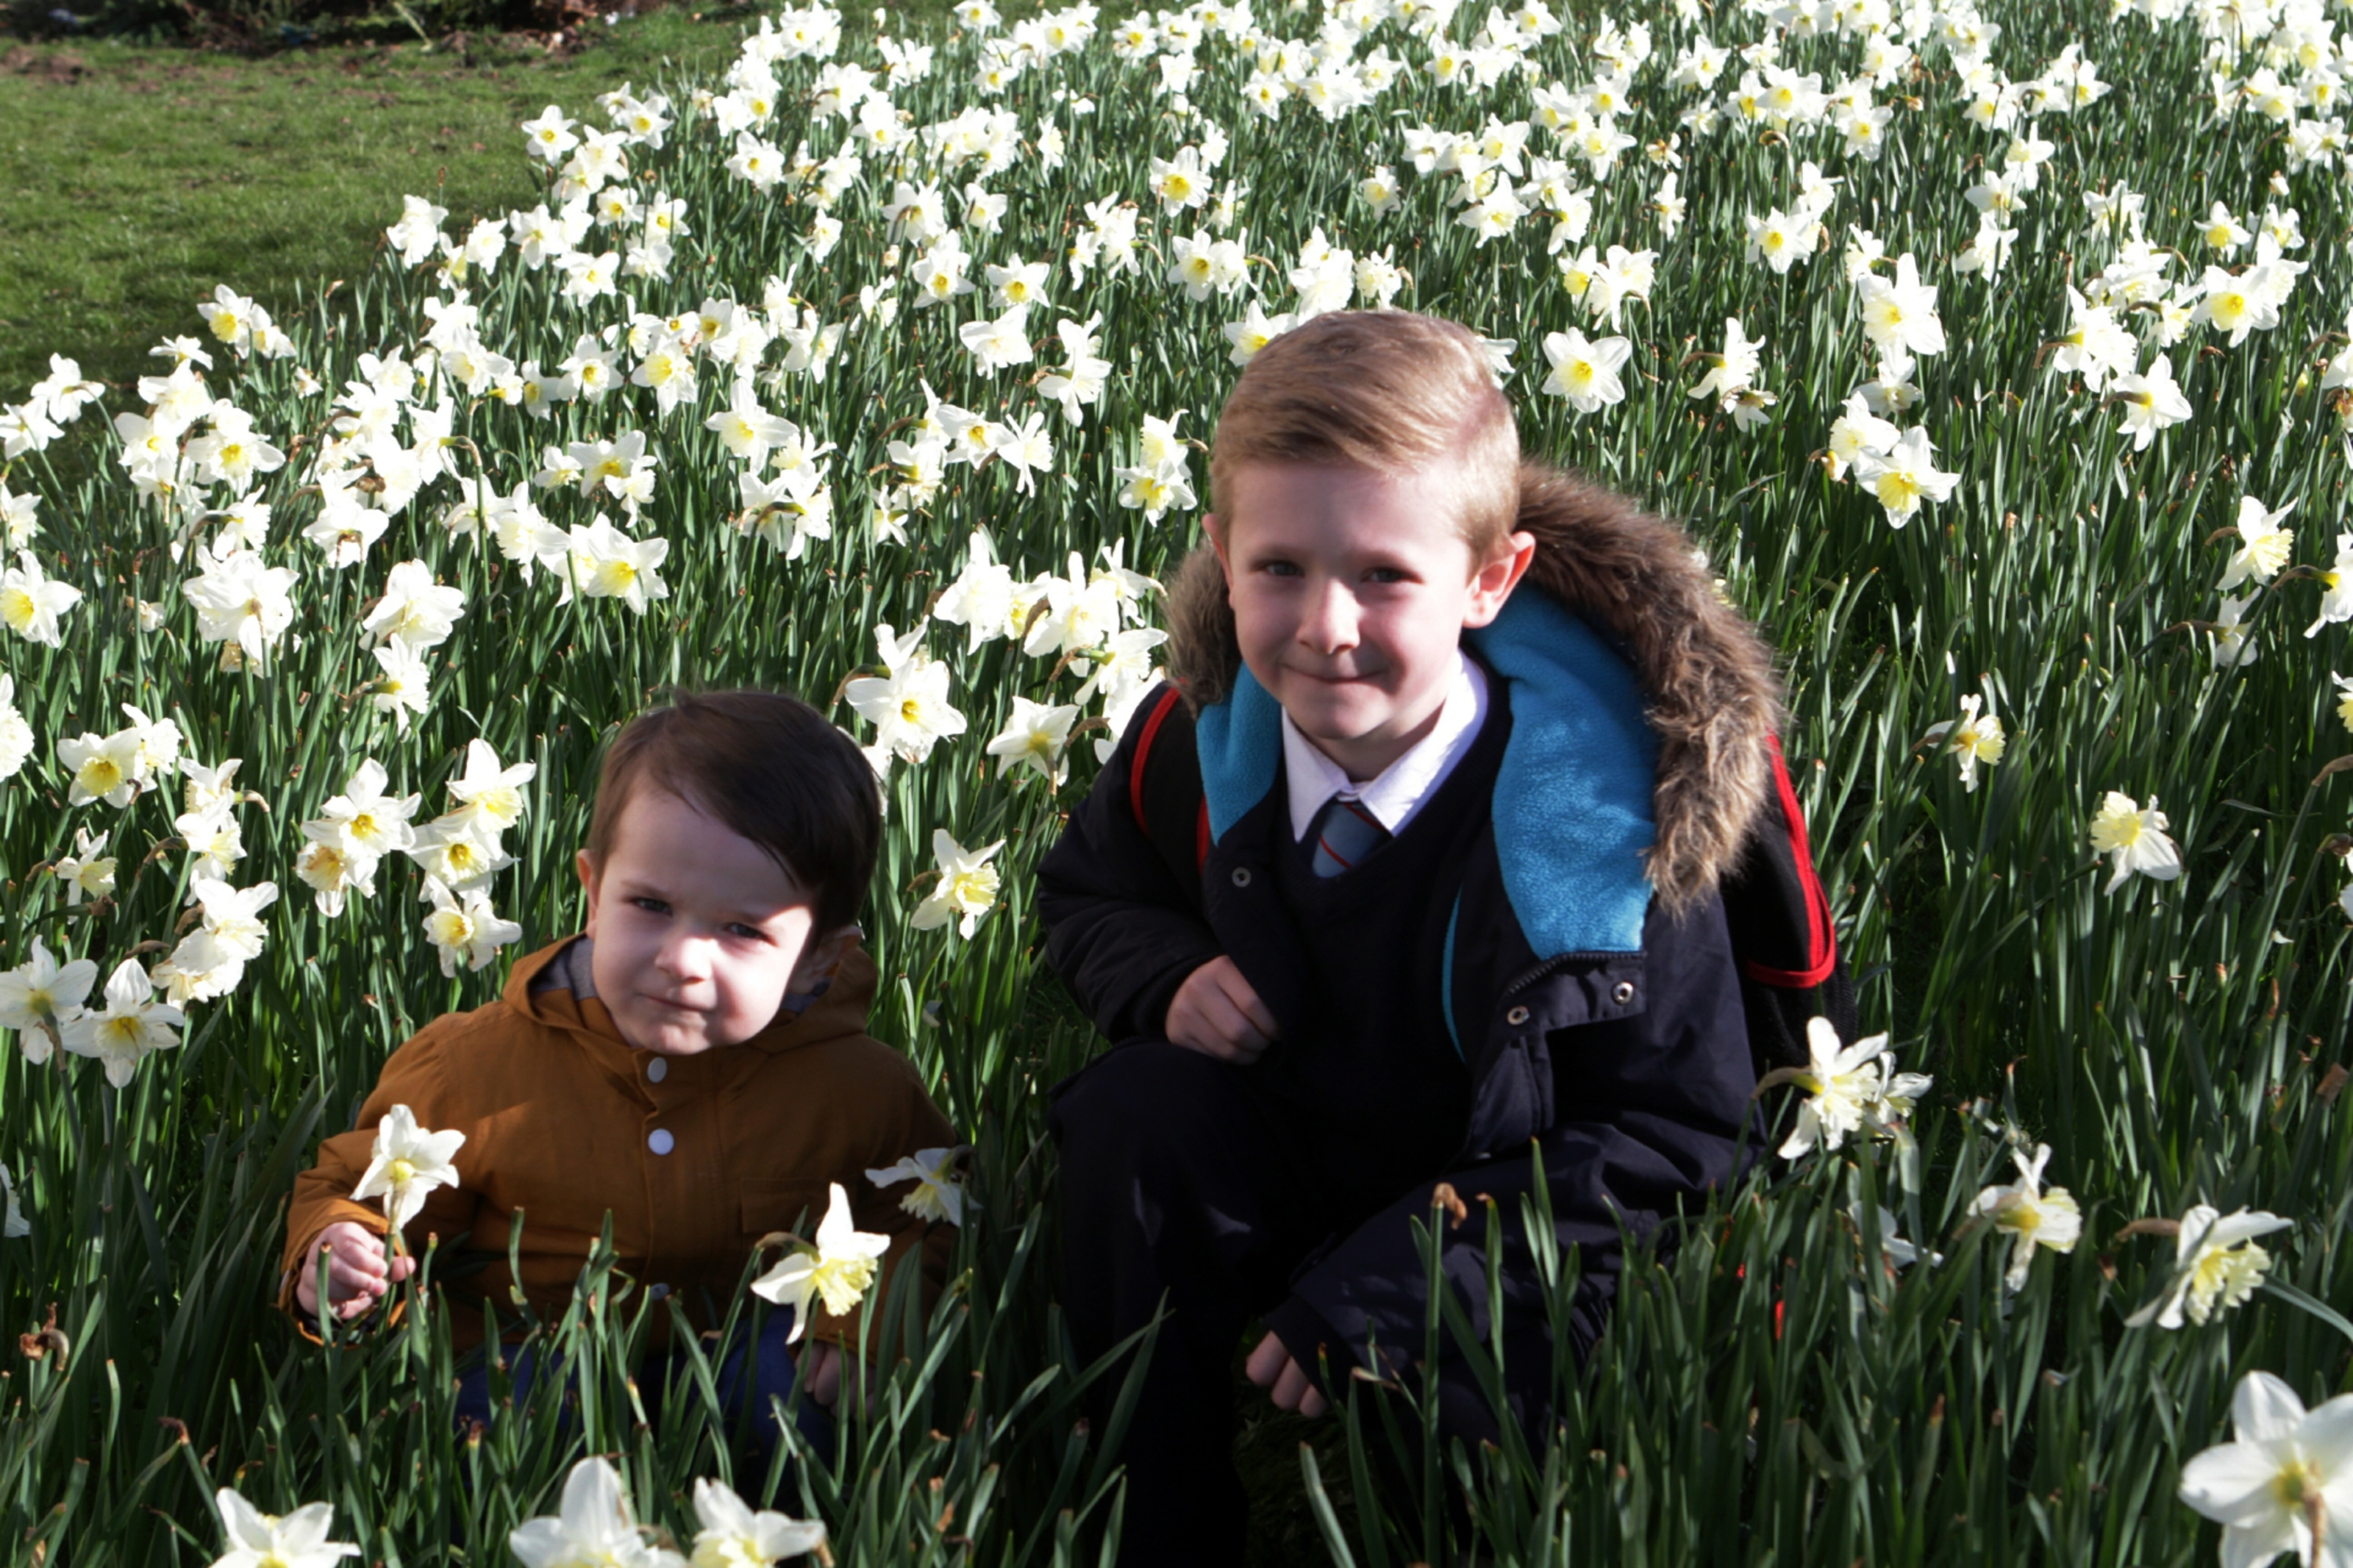 Four-year-old Cole Chambers and seven-year-old Calvin Heenan admire the daffodils on a beautiful spring morning in Menzieshill.